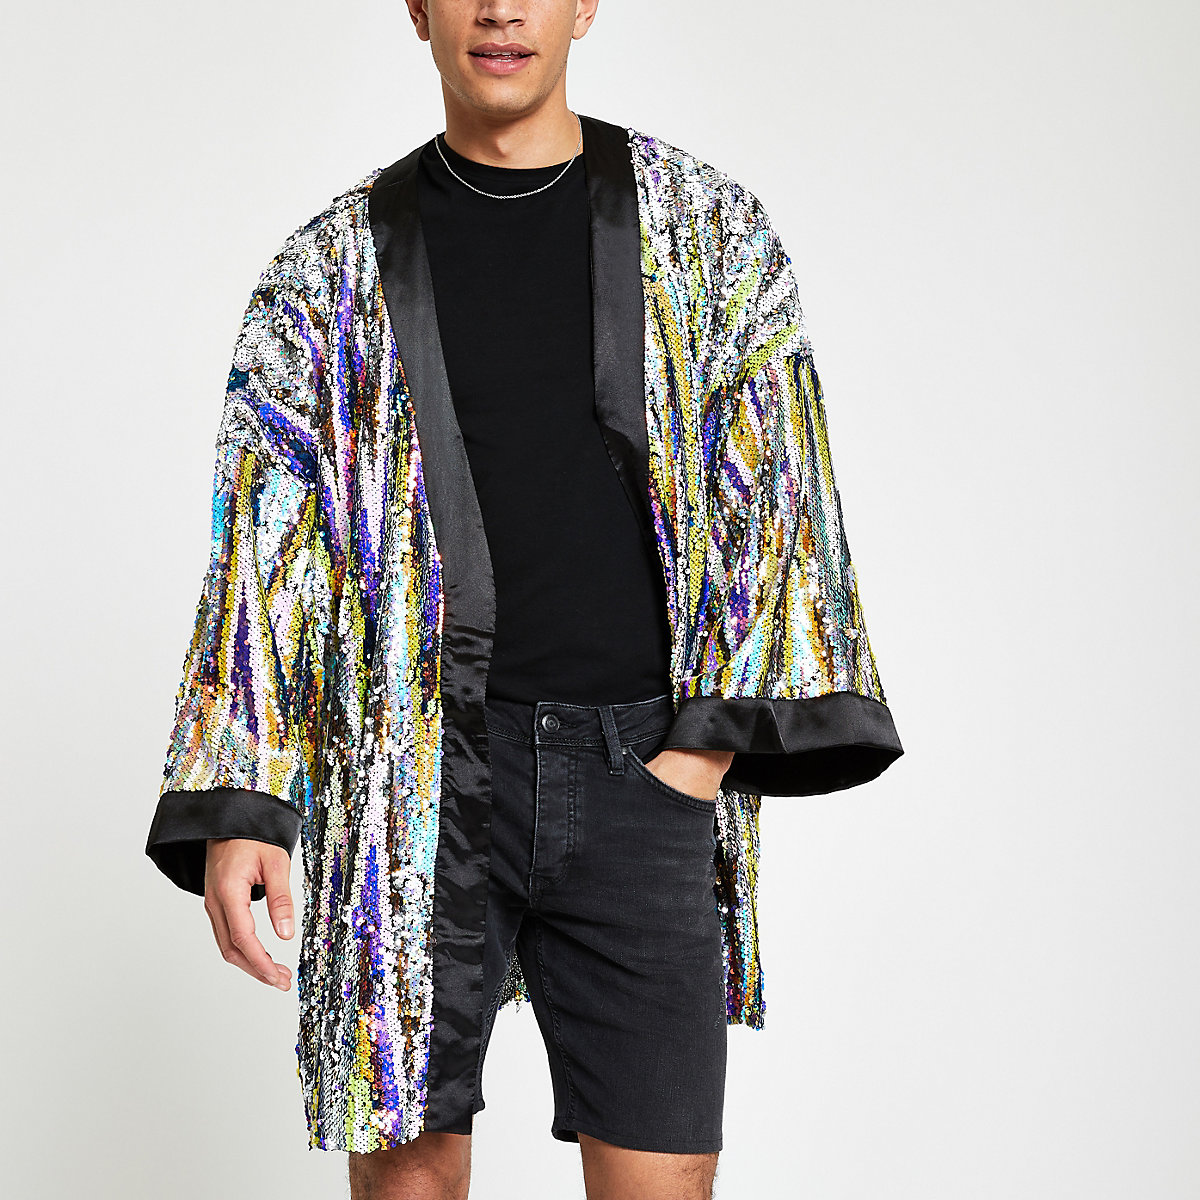 Jaded black sequin embellished kimono